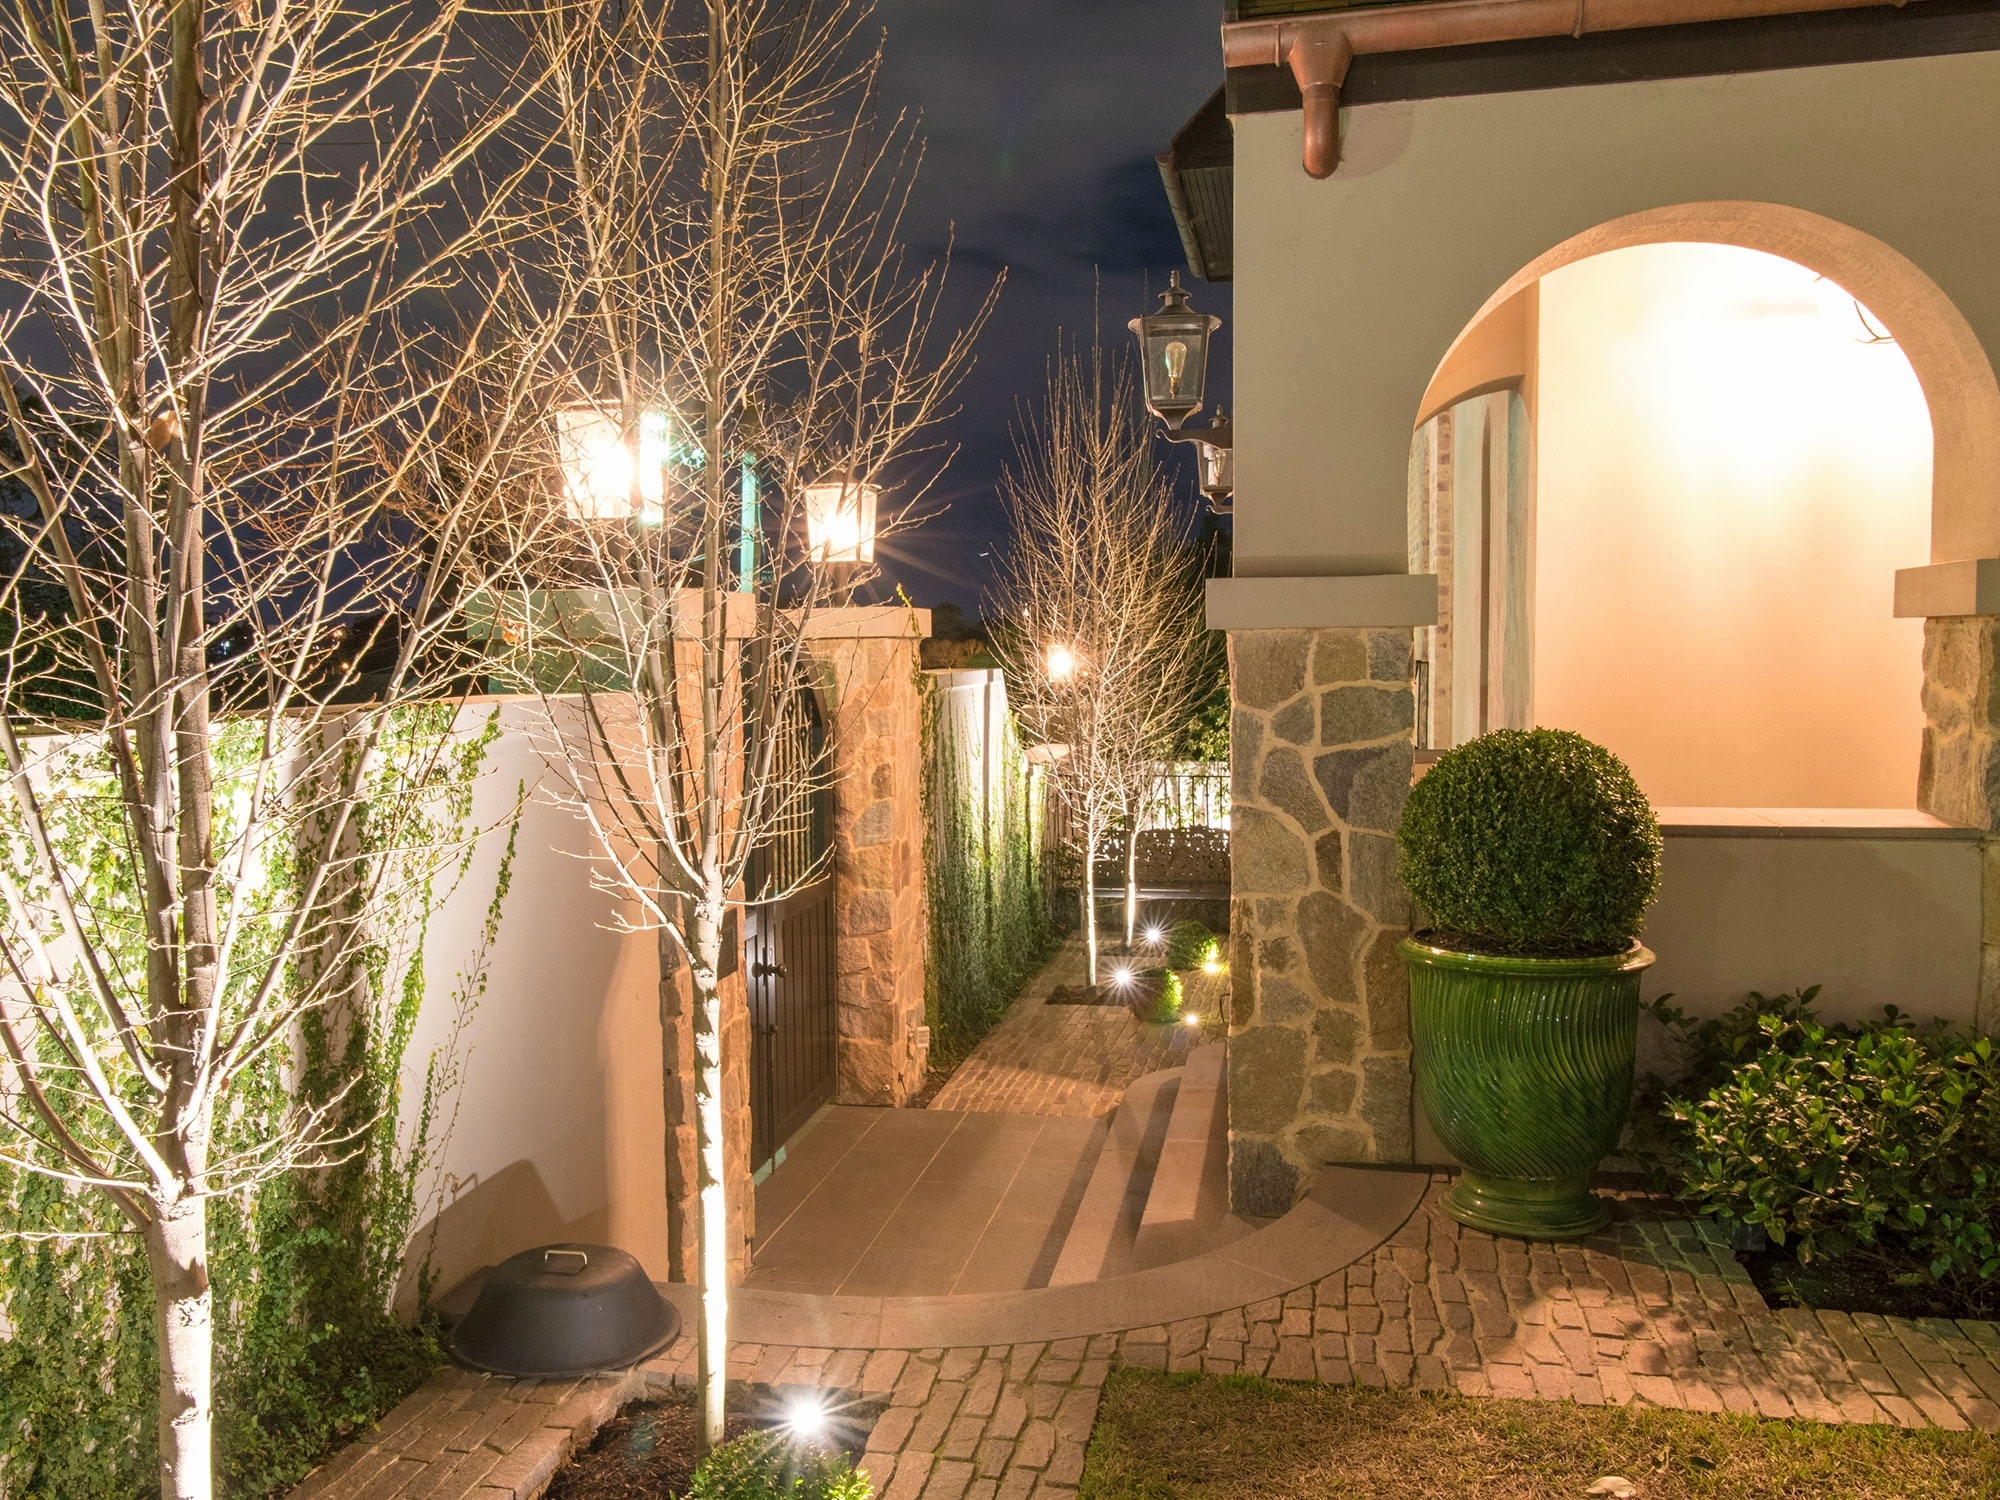 2019 Best Of Electric Outdoor Lighting Garden – Home Inspiration With Regard To Electric Outdoor Lighting Garden (View 1 of 20)